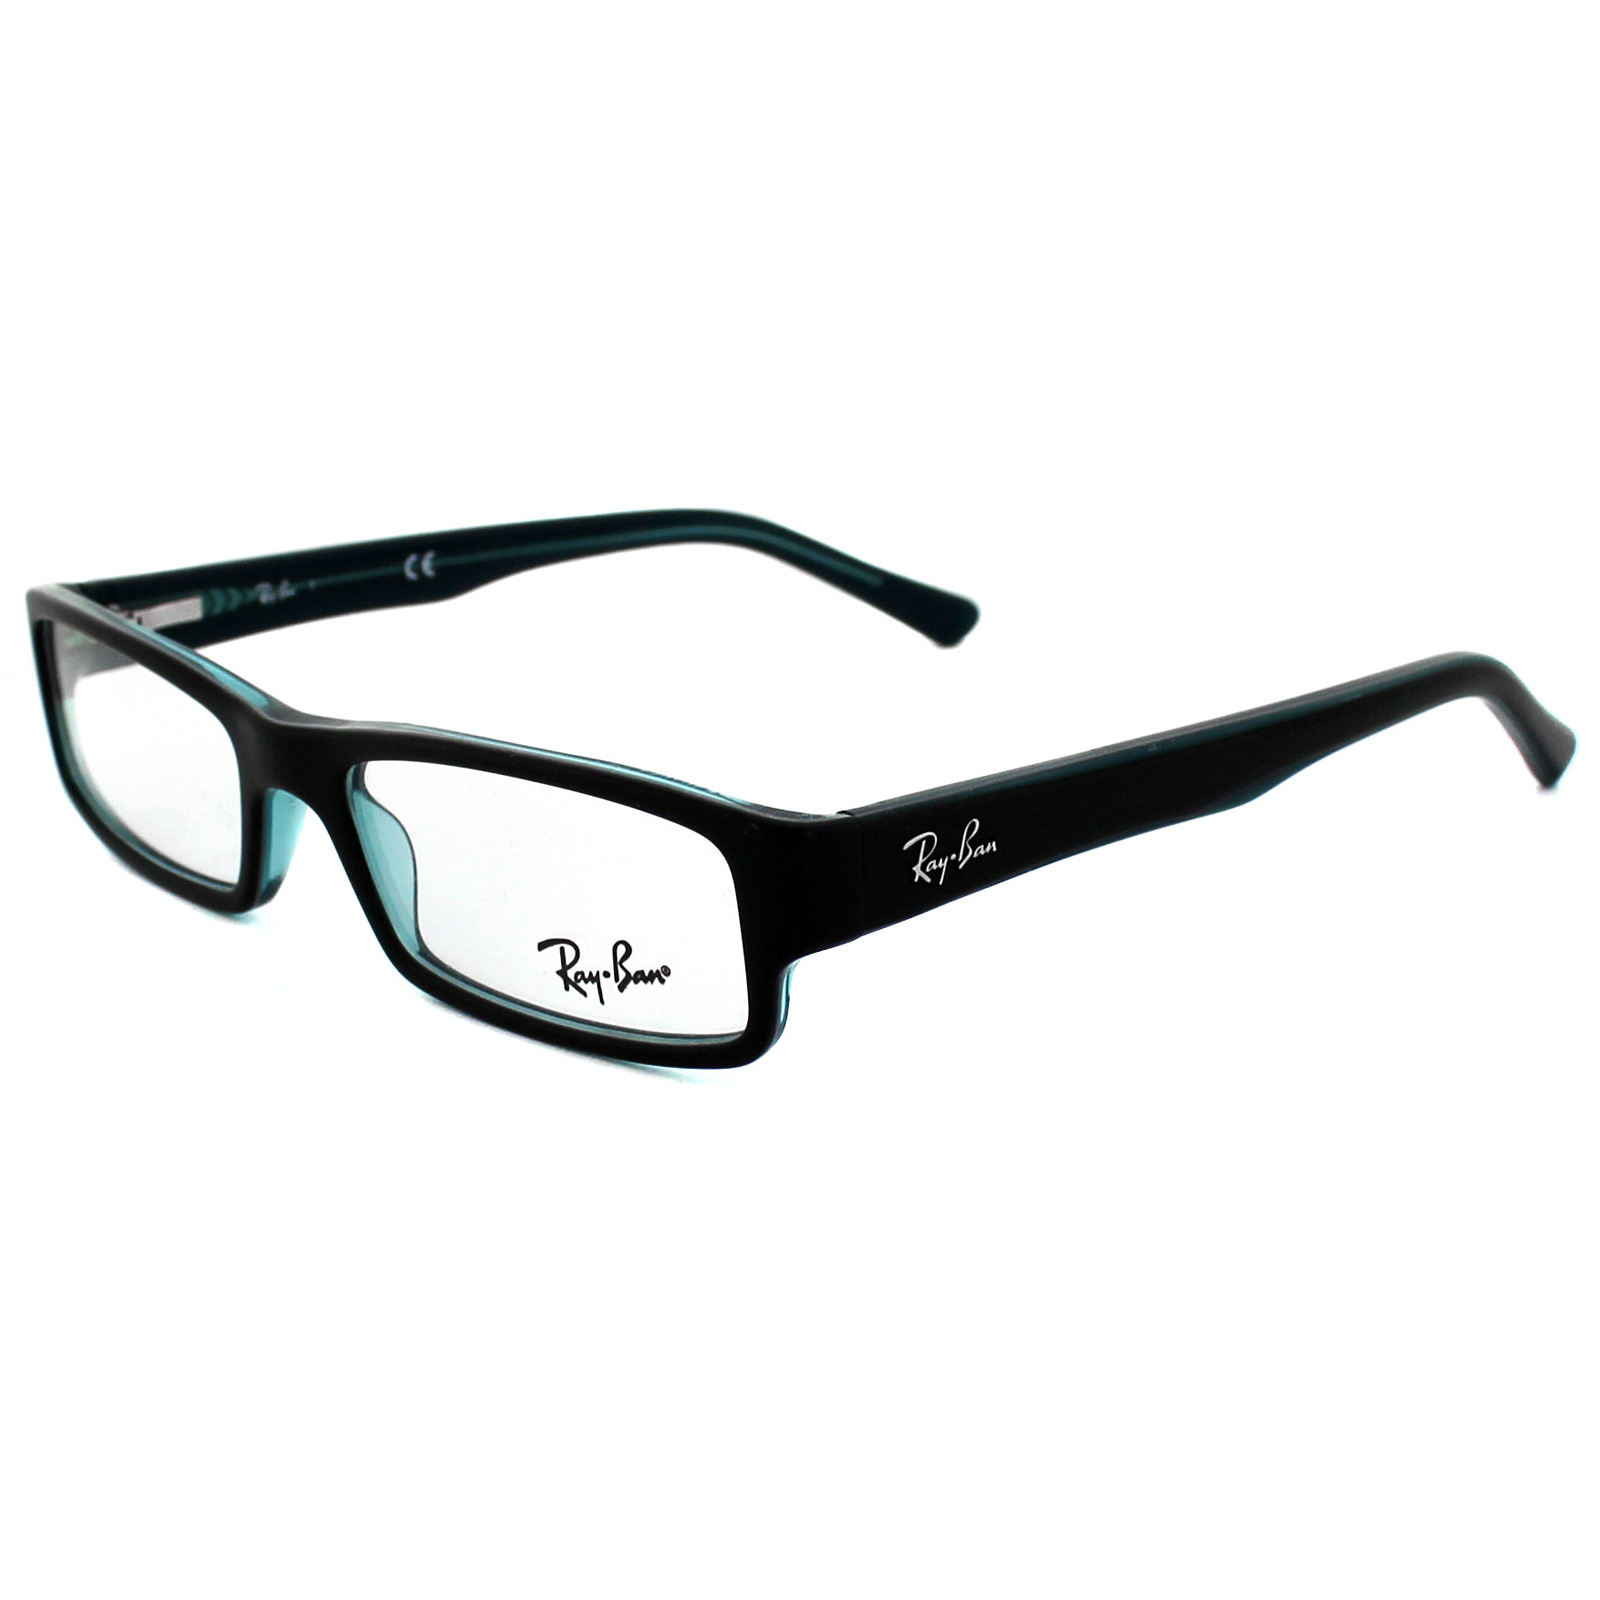 ray ban eyeglass frames discount  ray ban glasses frames 5246 5092 black grey turquoise